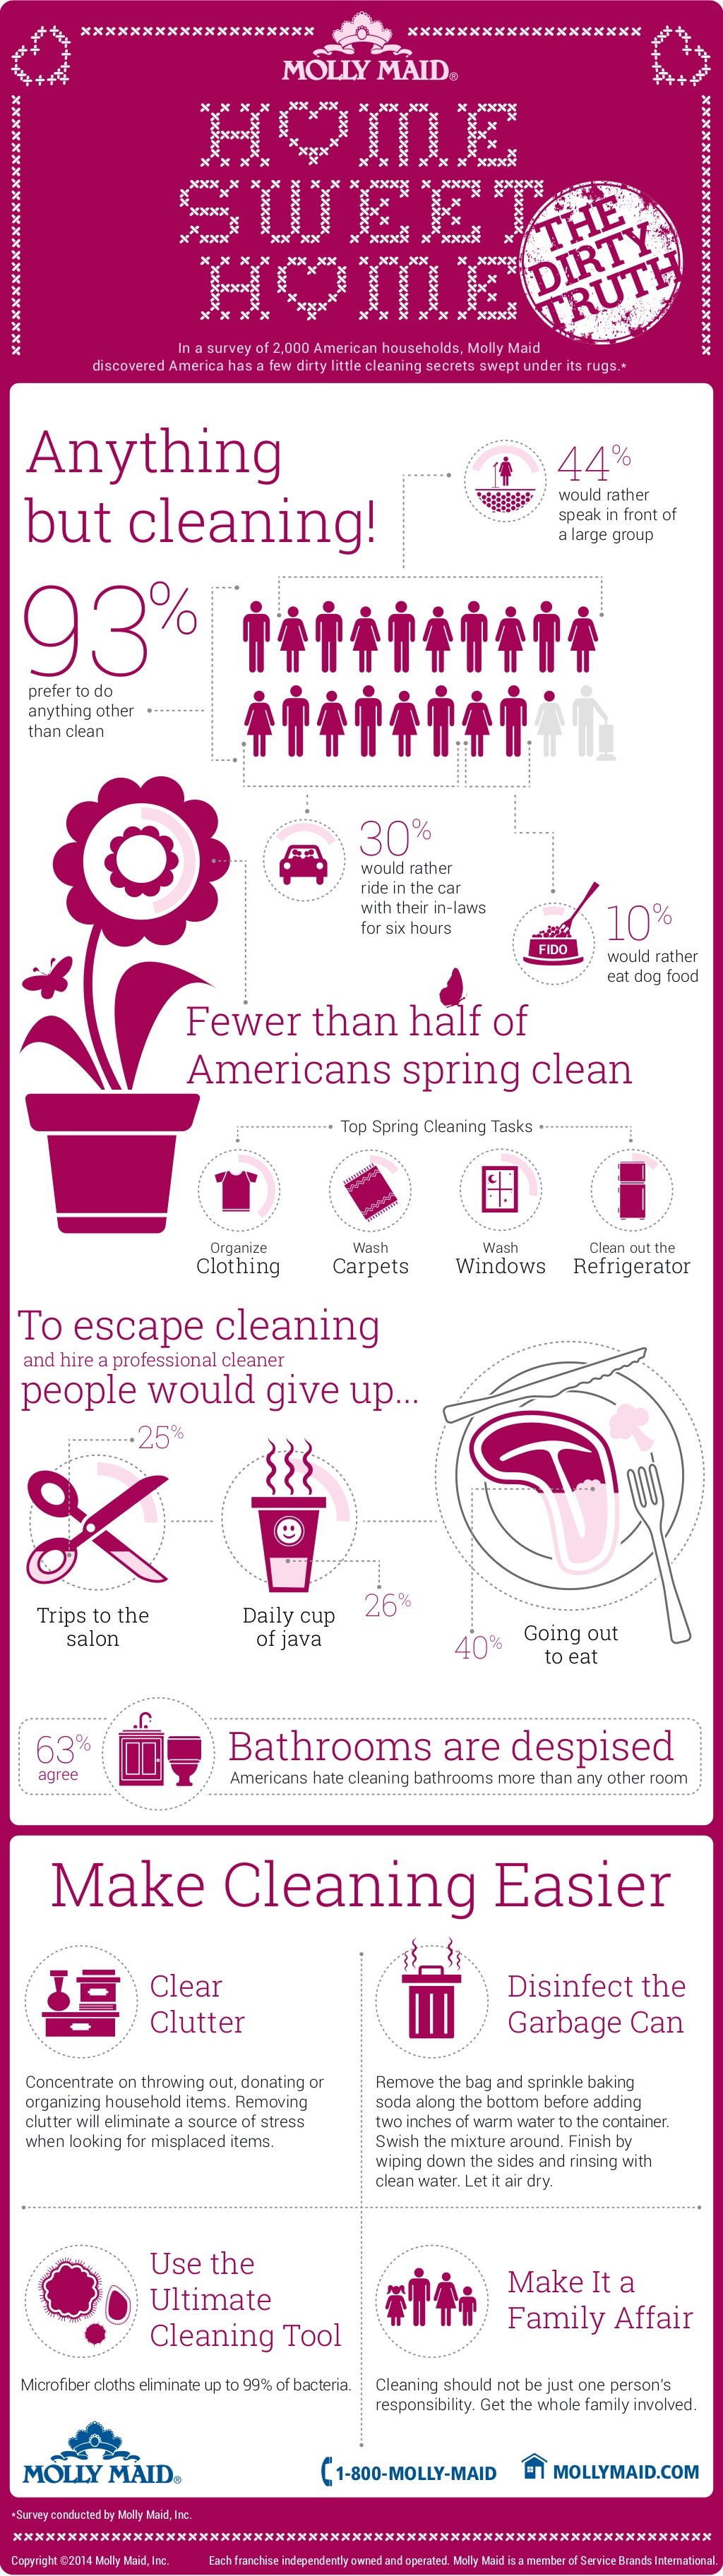 Cleaning infographic for Molly Maid Brand